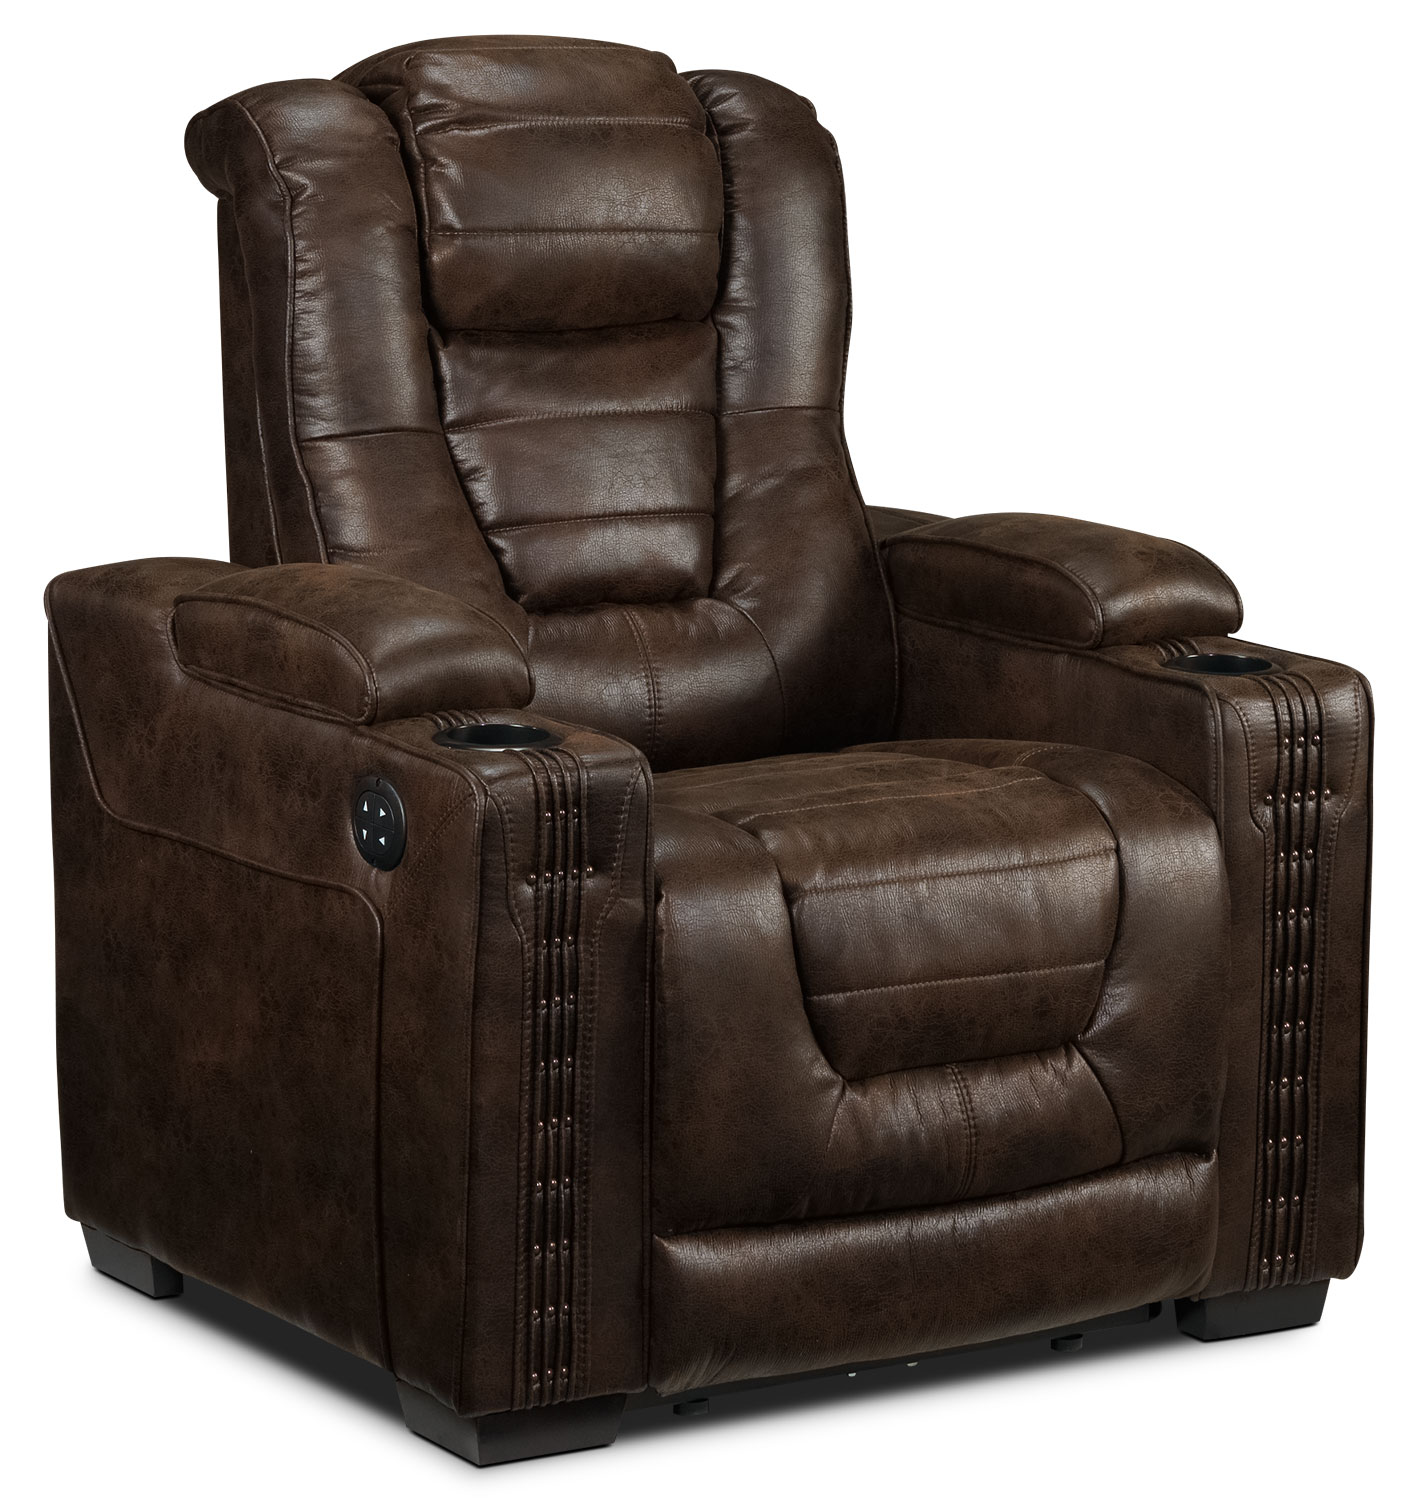 Dakota Power Recliner - Walnut